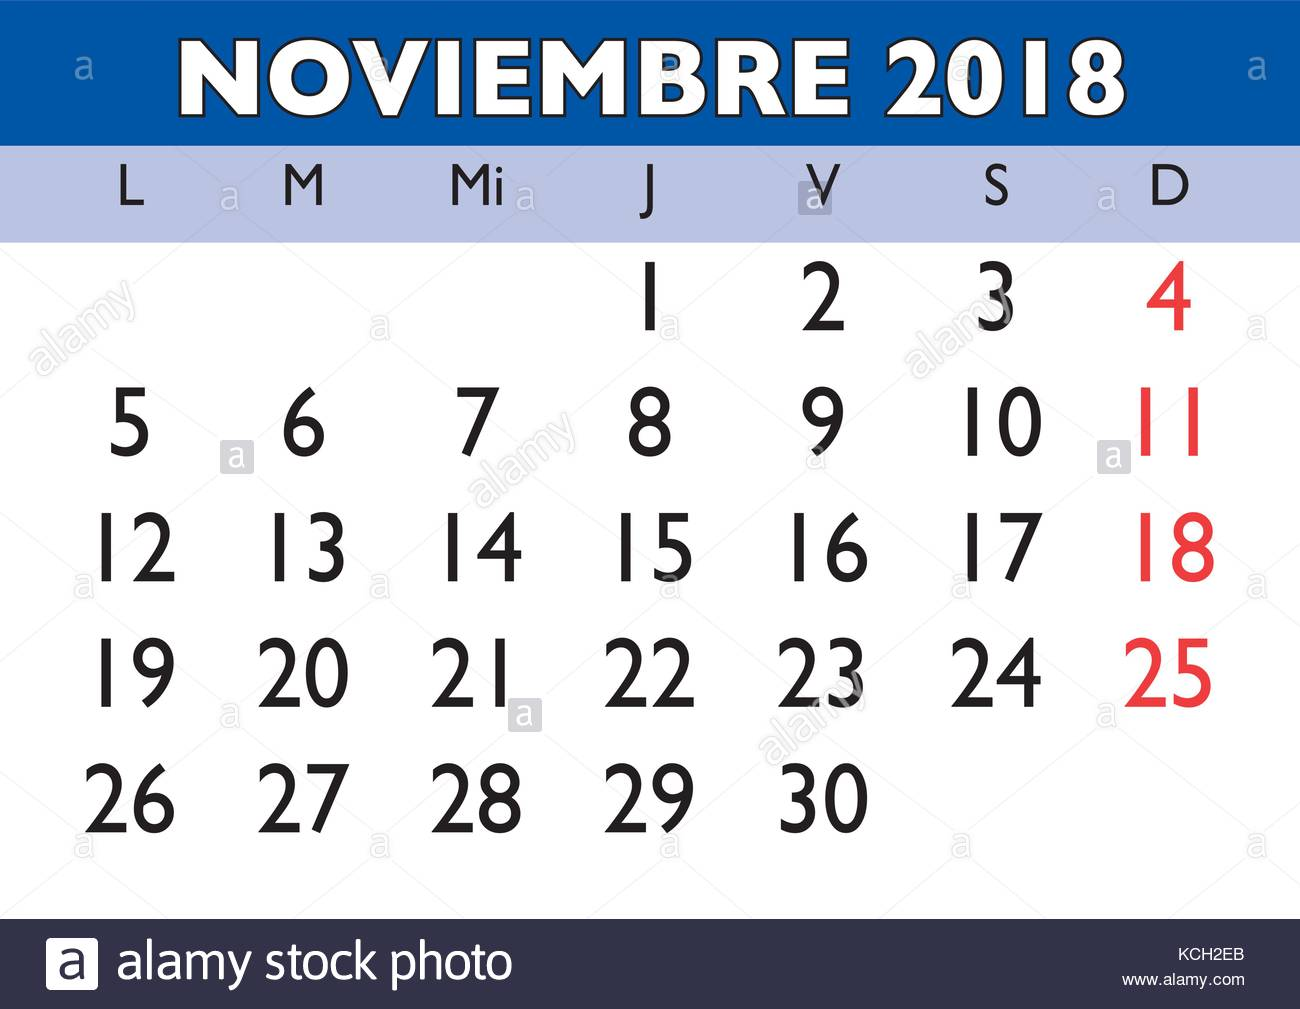 November month in a year 2018 wall calendar in spanish ...